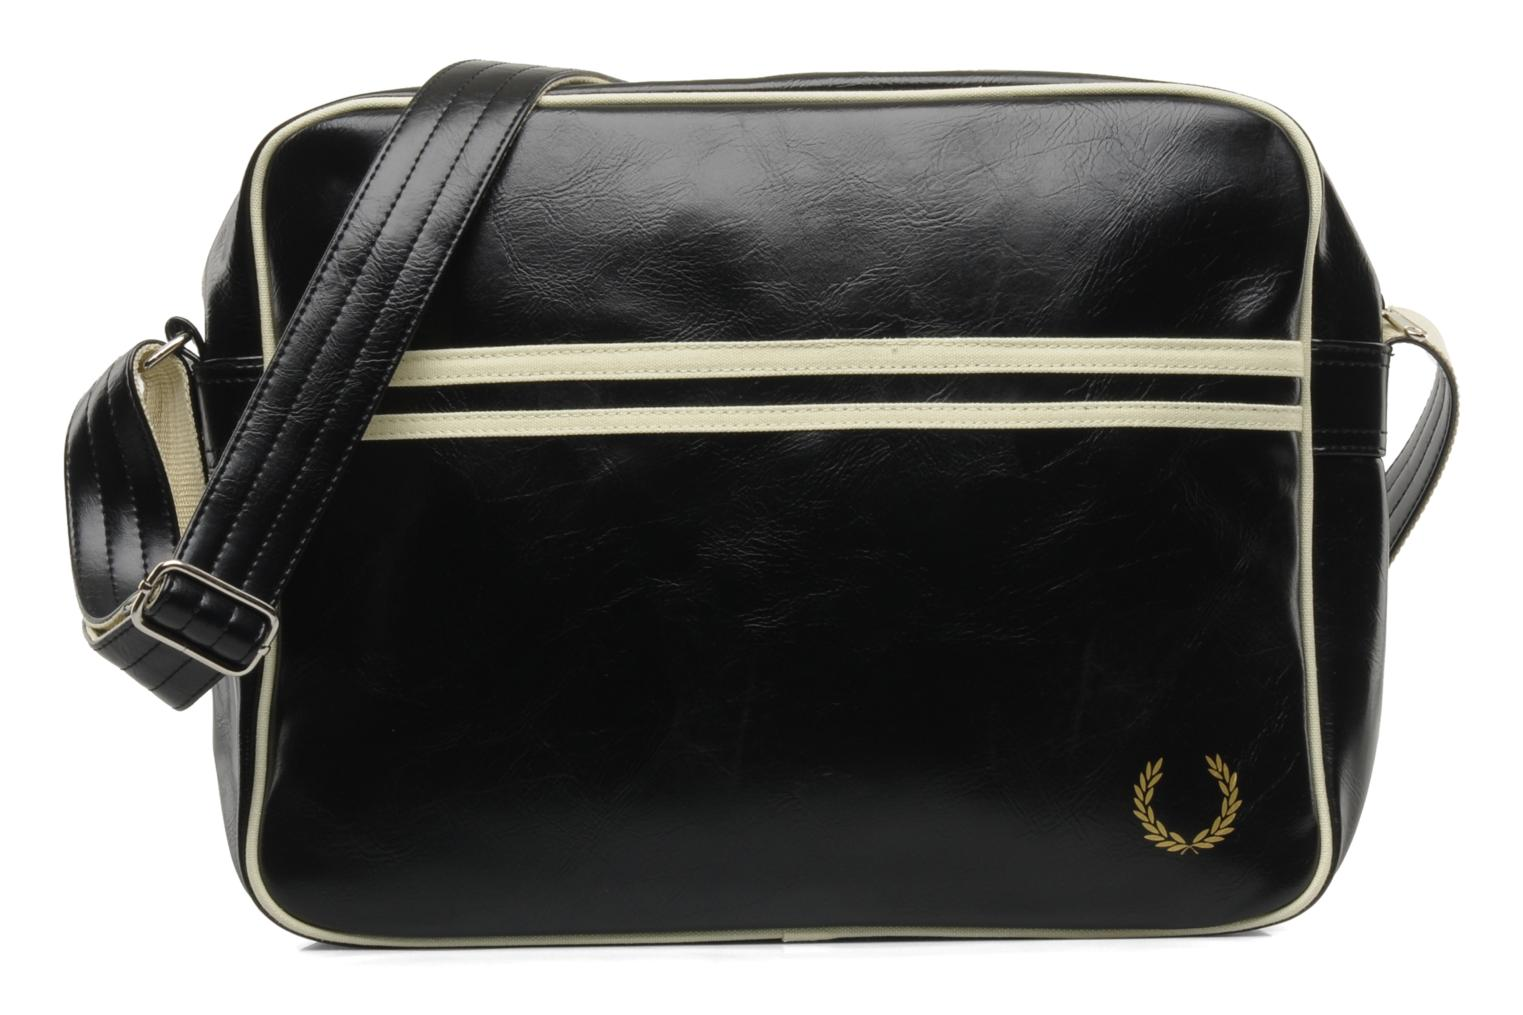 Classic shoulder bag Black-Ecru 102